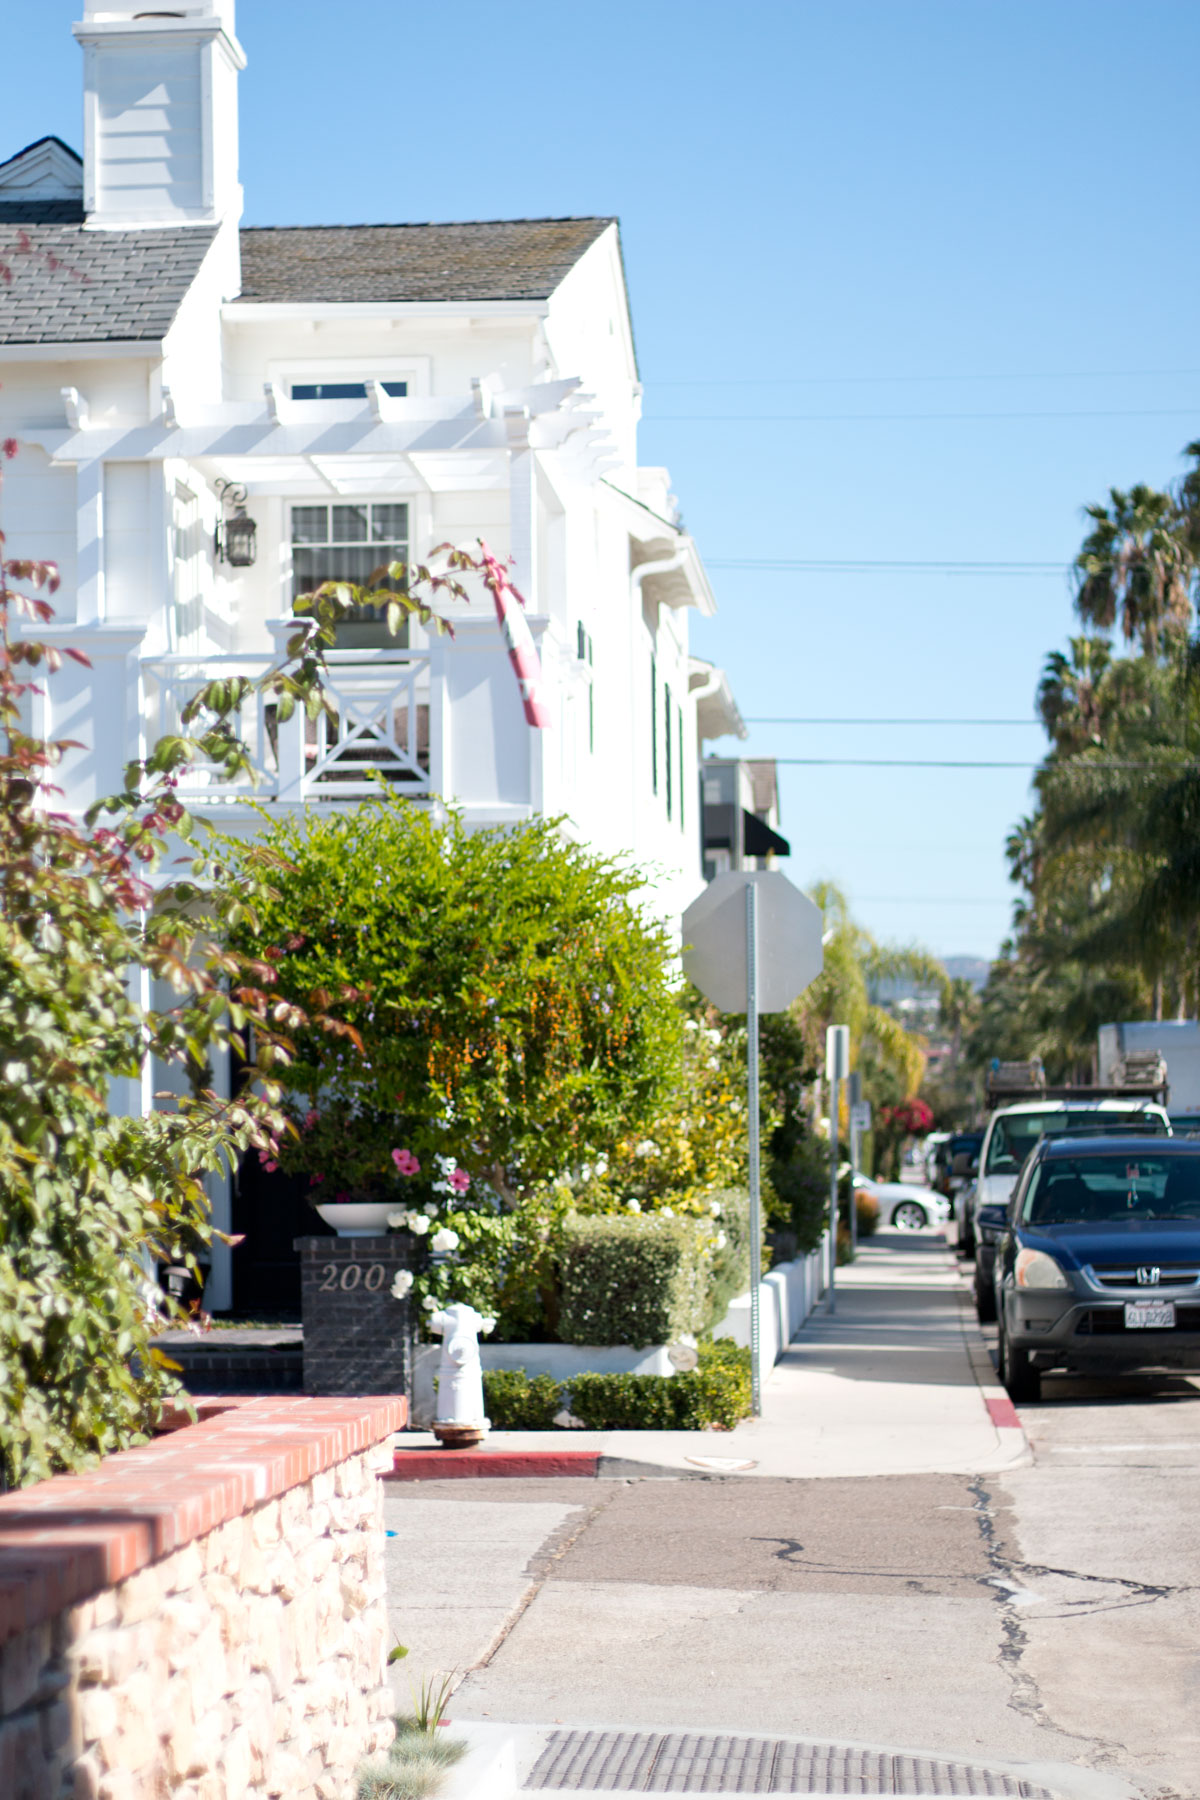 Balboa Island Neighborhood & Cute Houses // Hello Rigby Seattle Fashion & Lifestyle Blog